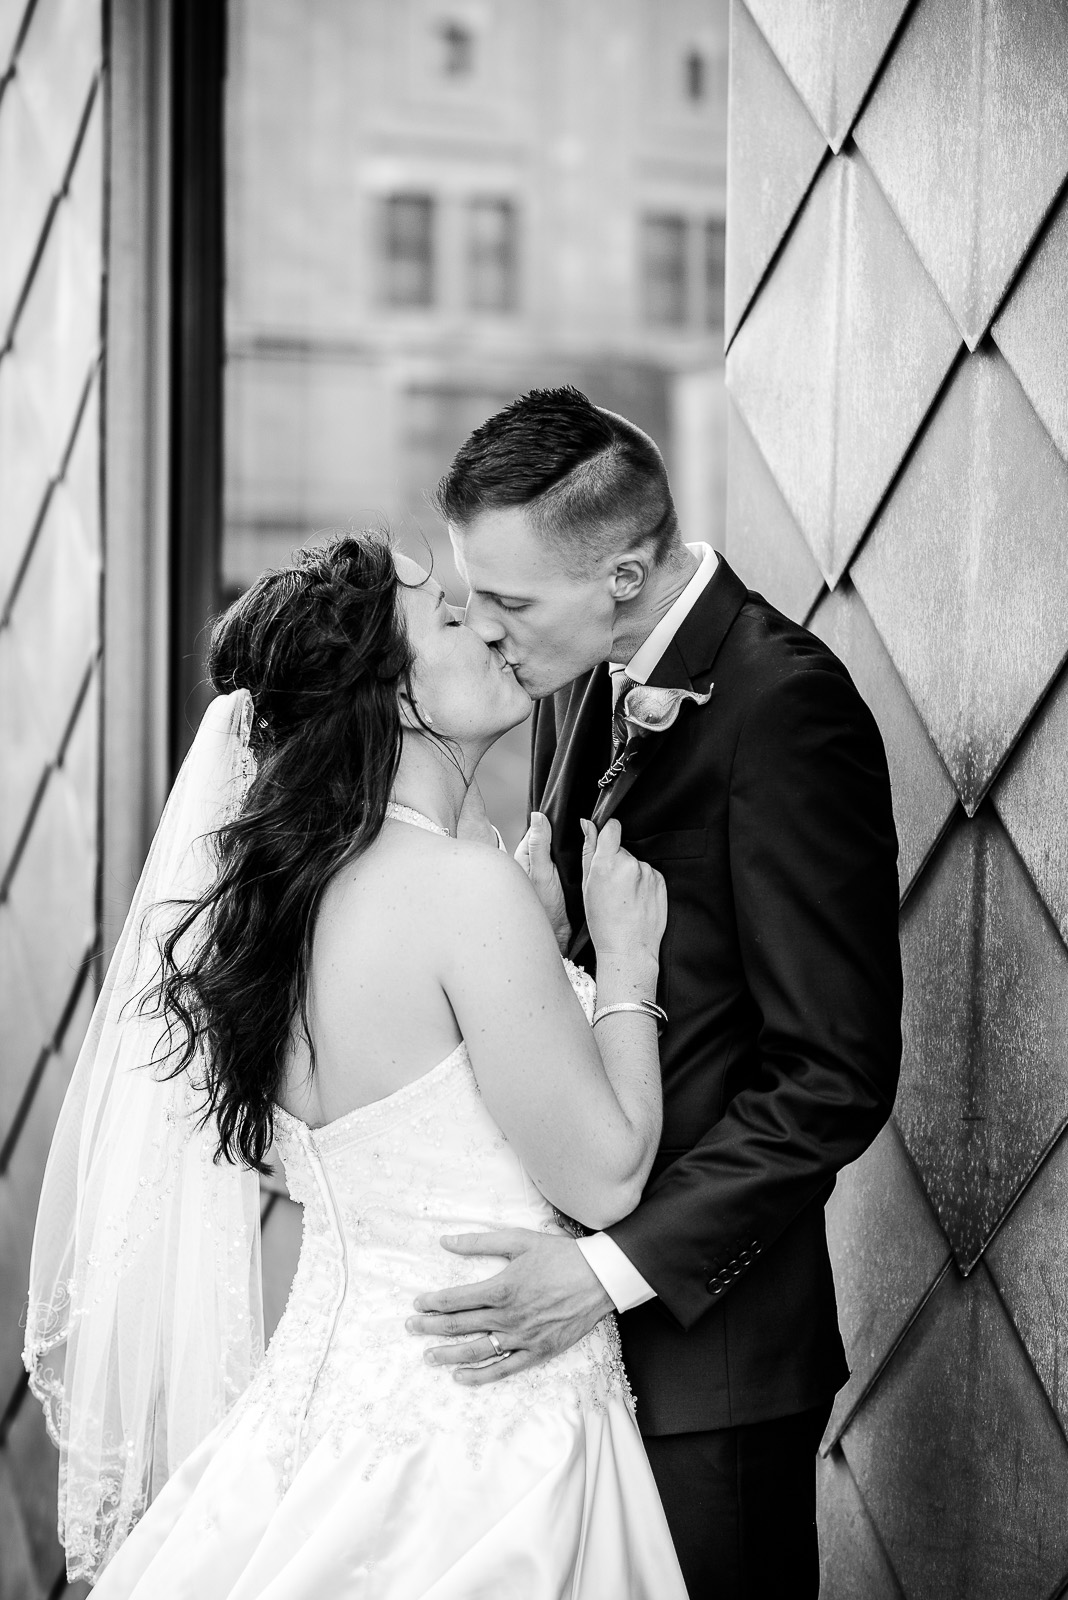 Eric_and_Christy_Photography_Blog_2018_Portraits-12